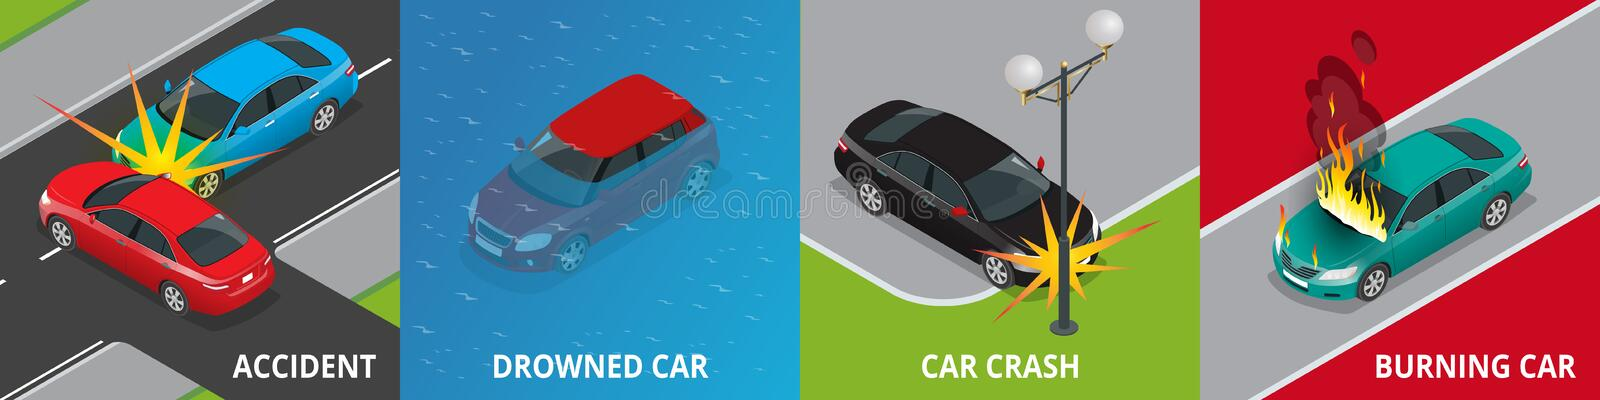 Isometric road accident, drowned car, car crash, burning car concept stock illustration